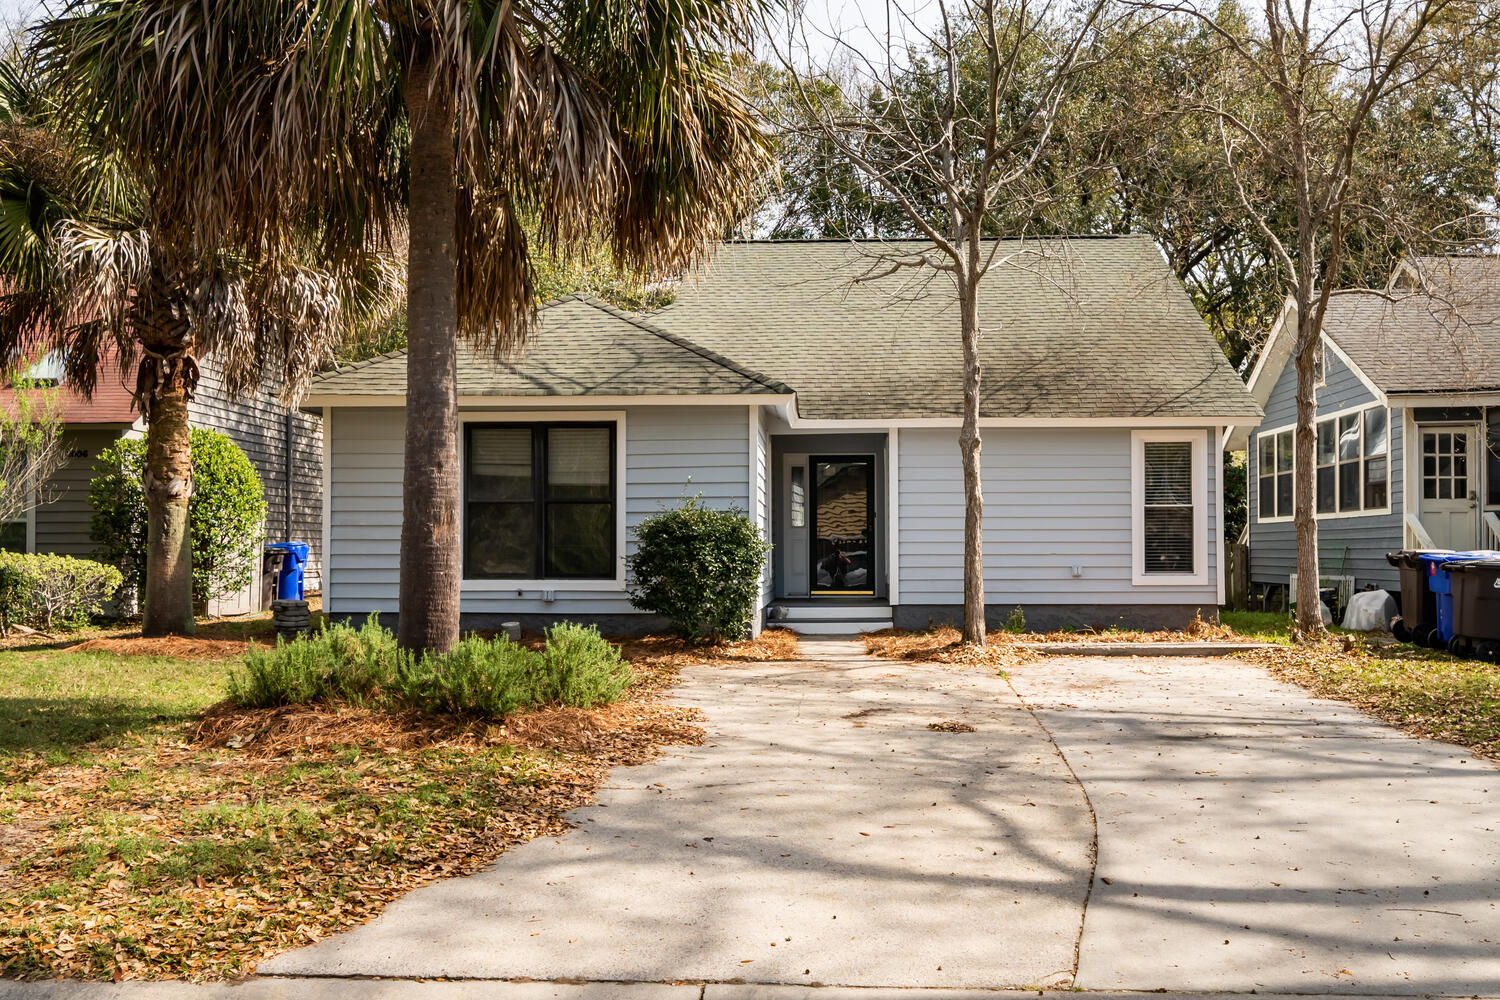 Pirates Cove Homes For Sale - 1510 Privateer, Mount Pleasant, SC - 10